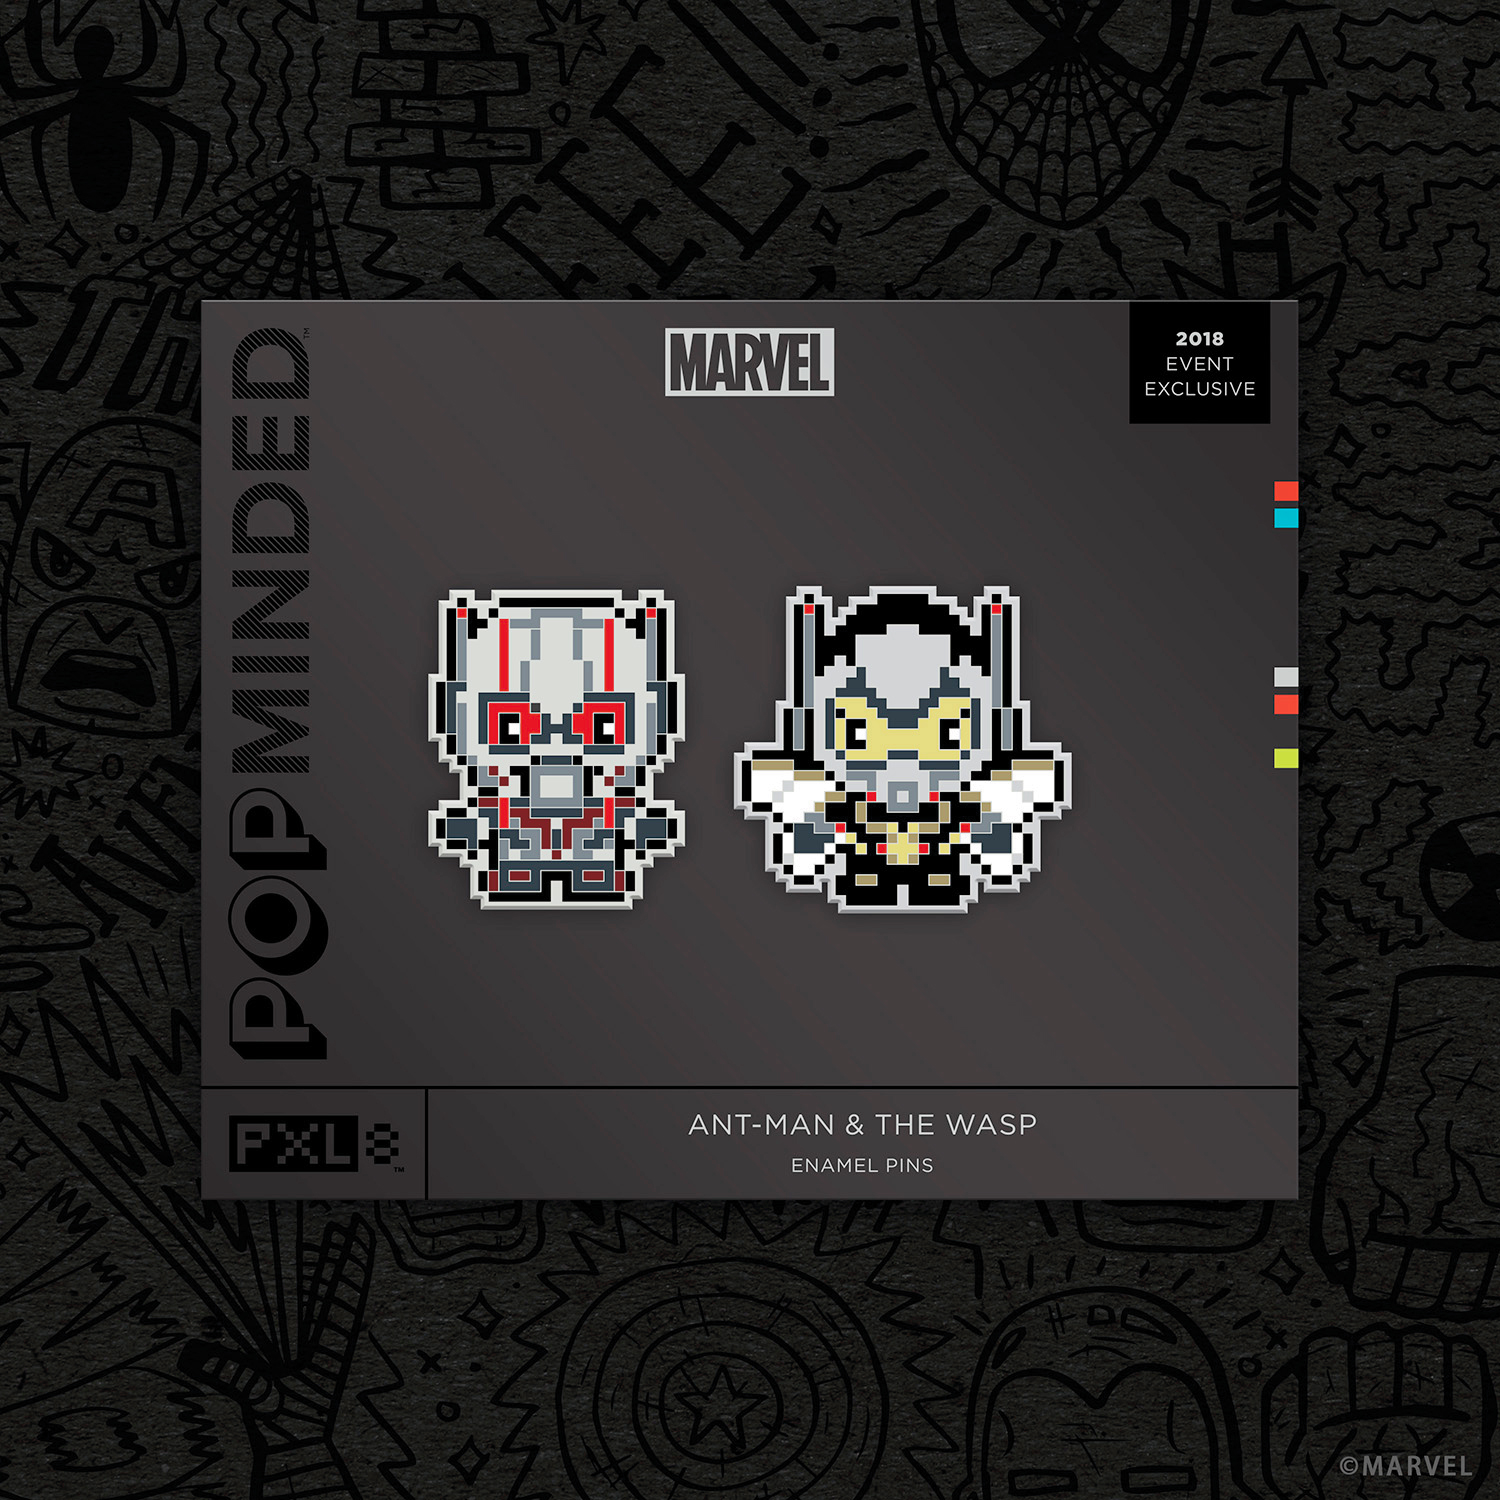 PM-MARVEL_excl_BG